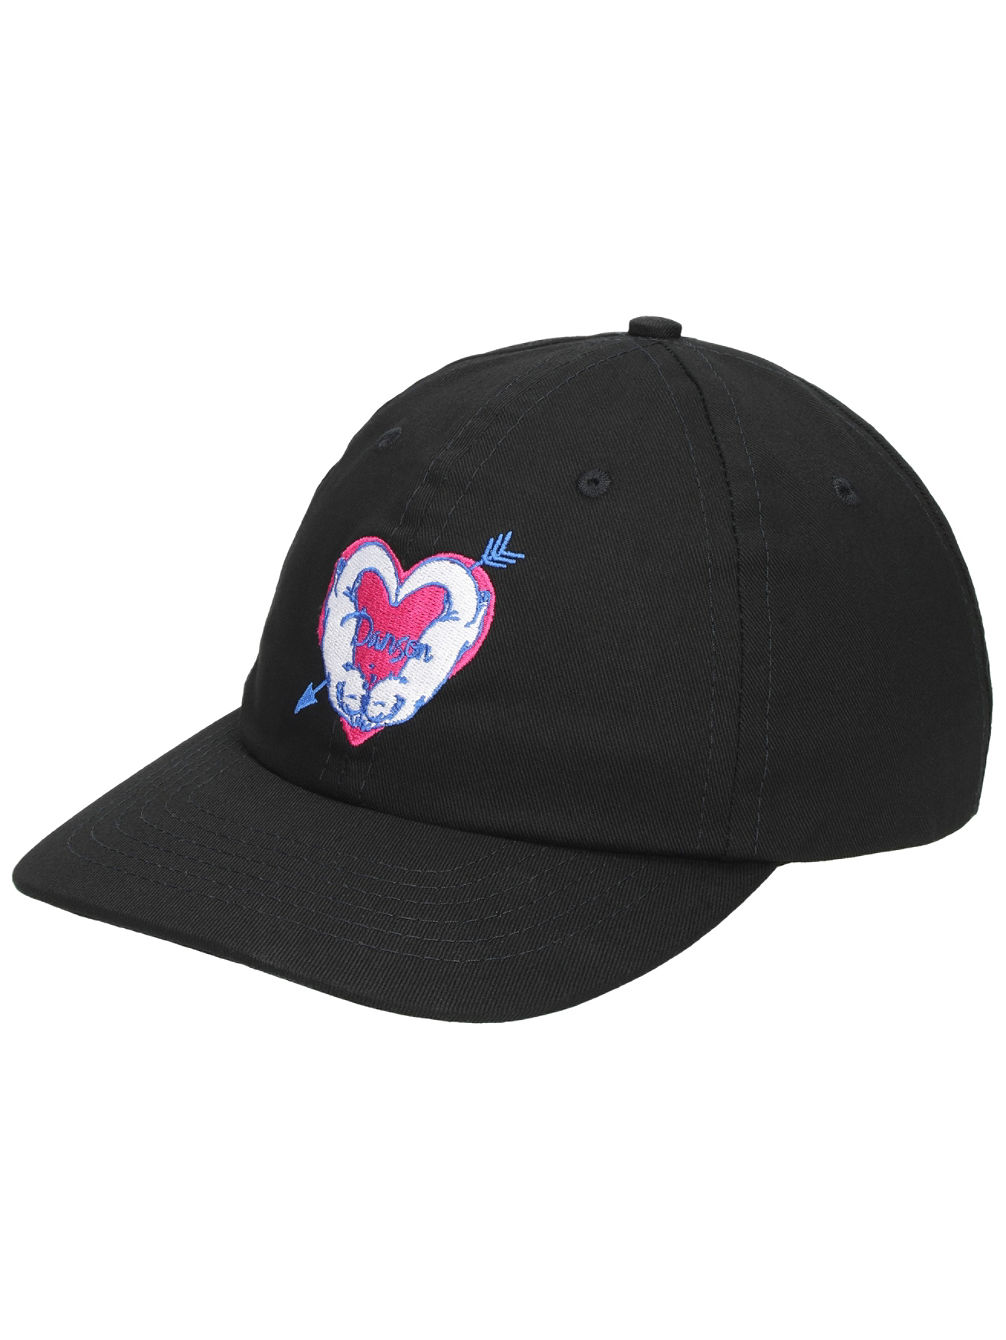 Significant Other Hat